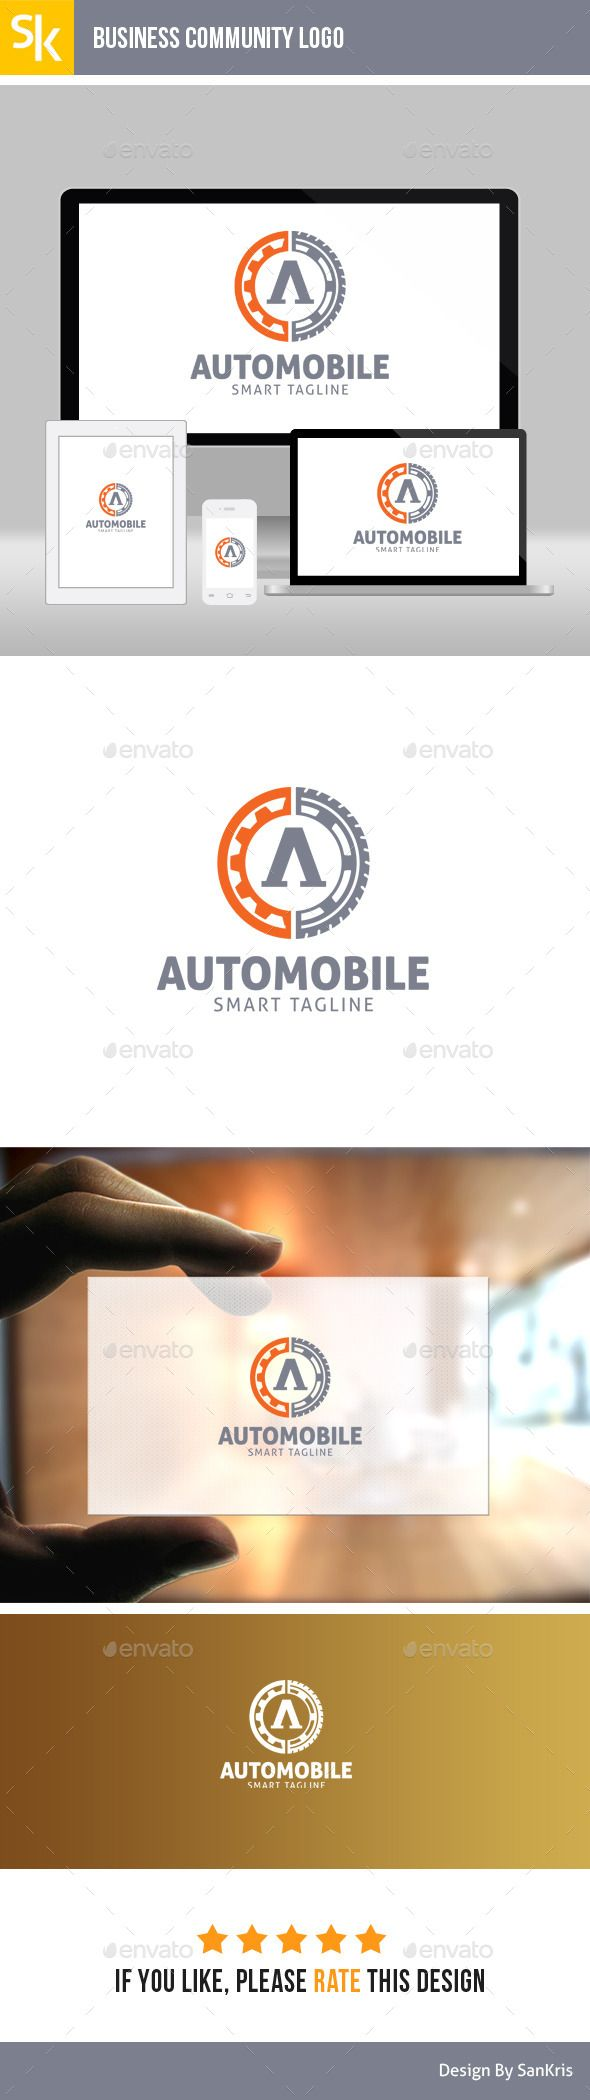 The Best Automobile Logos Ideas On Pinterest Name Symbols - Car signs and namescar signs vector free download